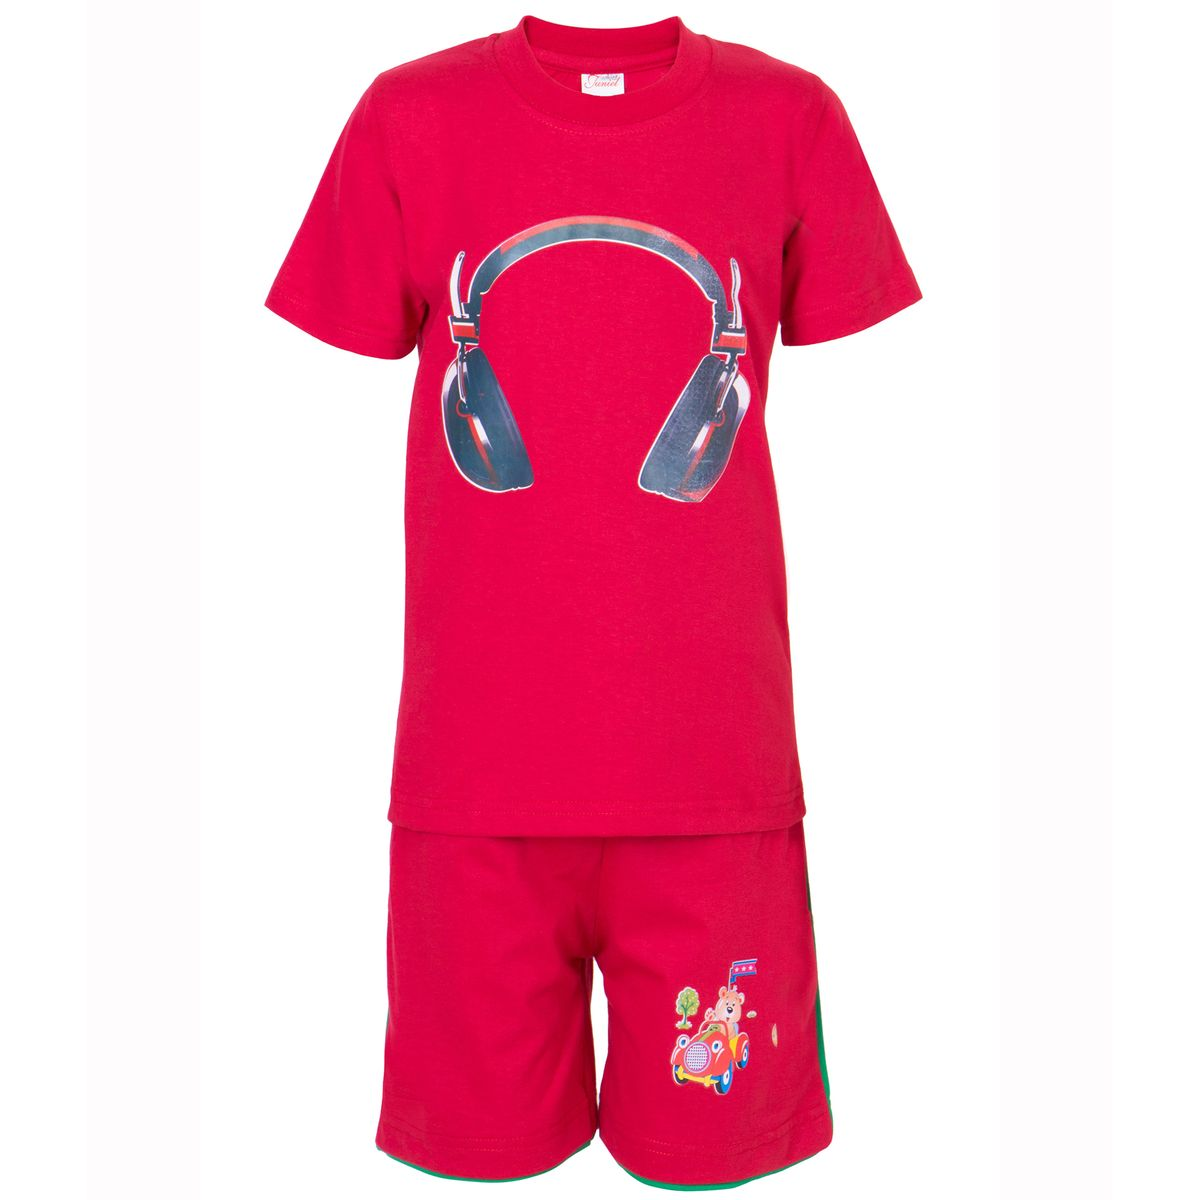 Ultrafit Junior Boys Cotton MultiColored Twin Sets- Pack of 2217